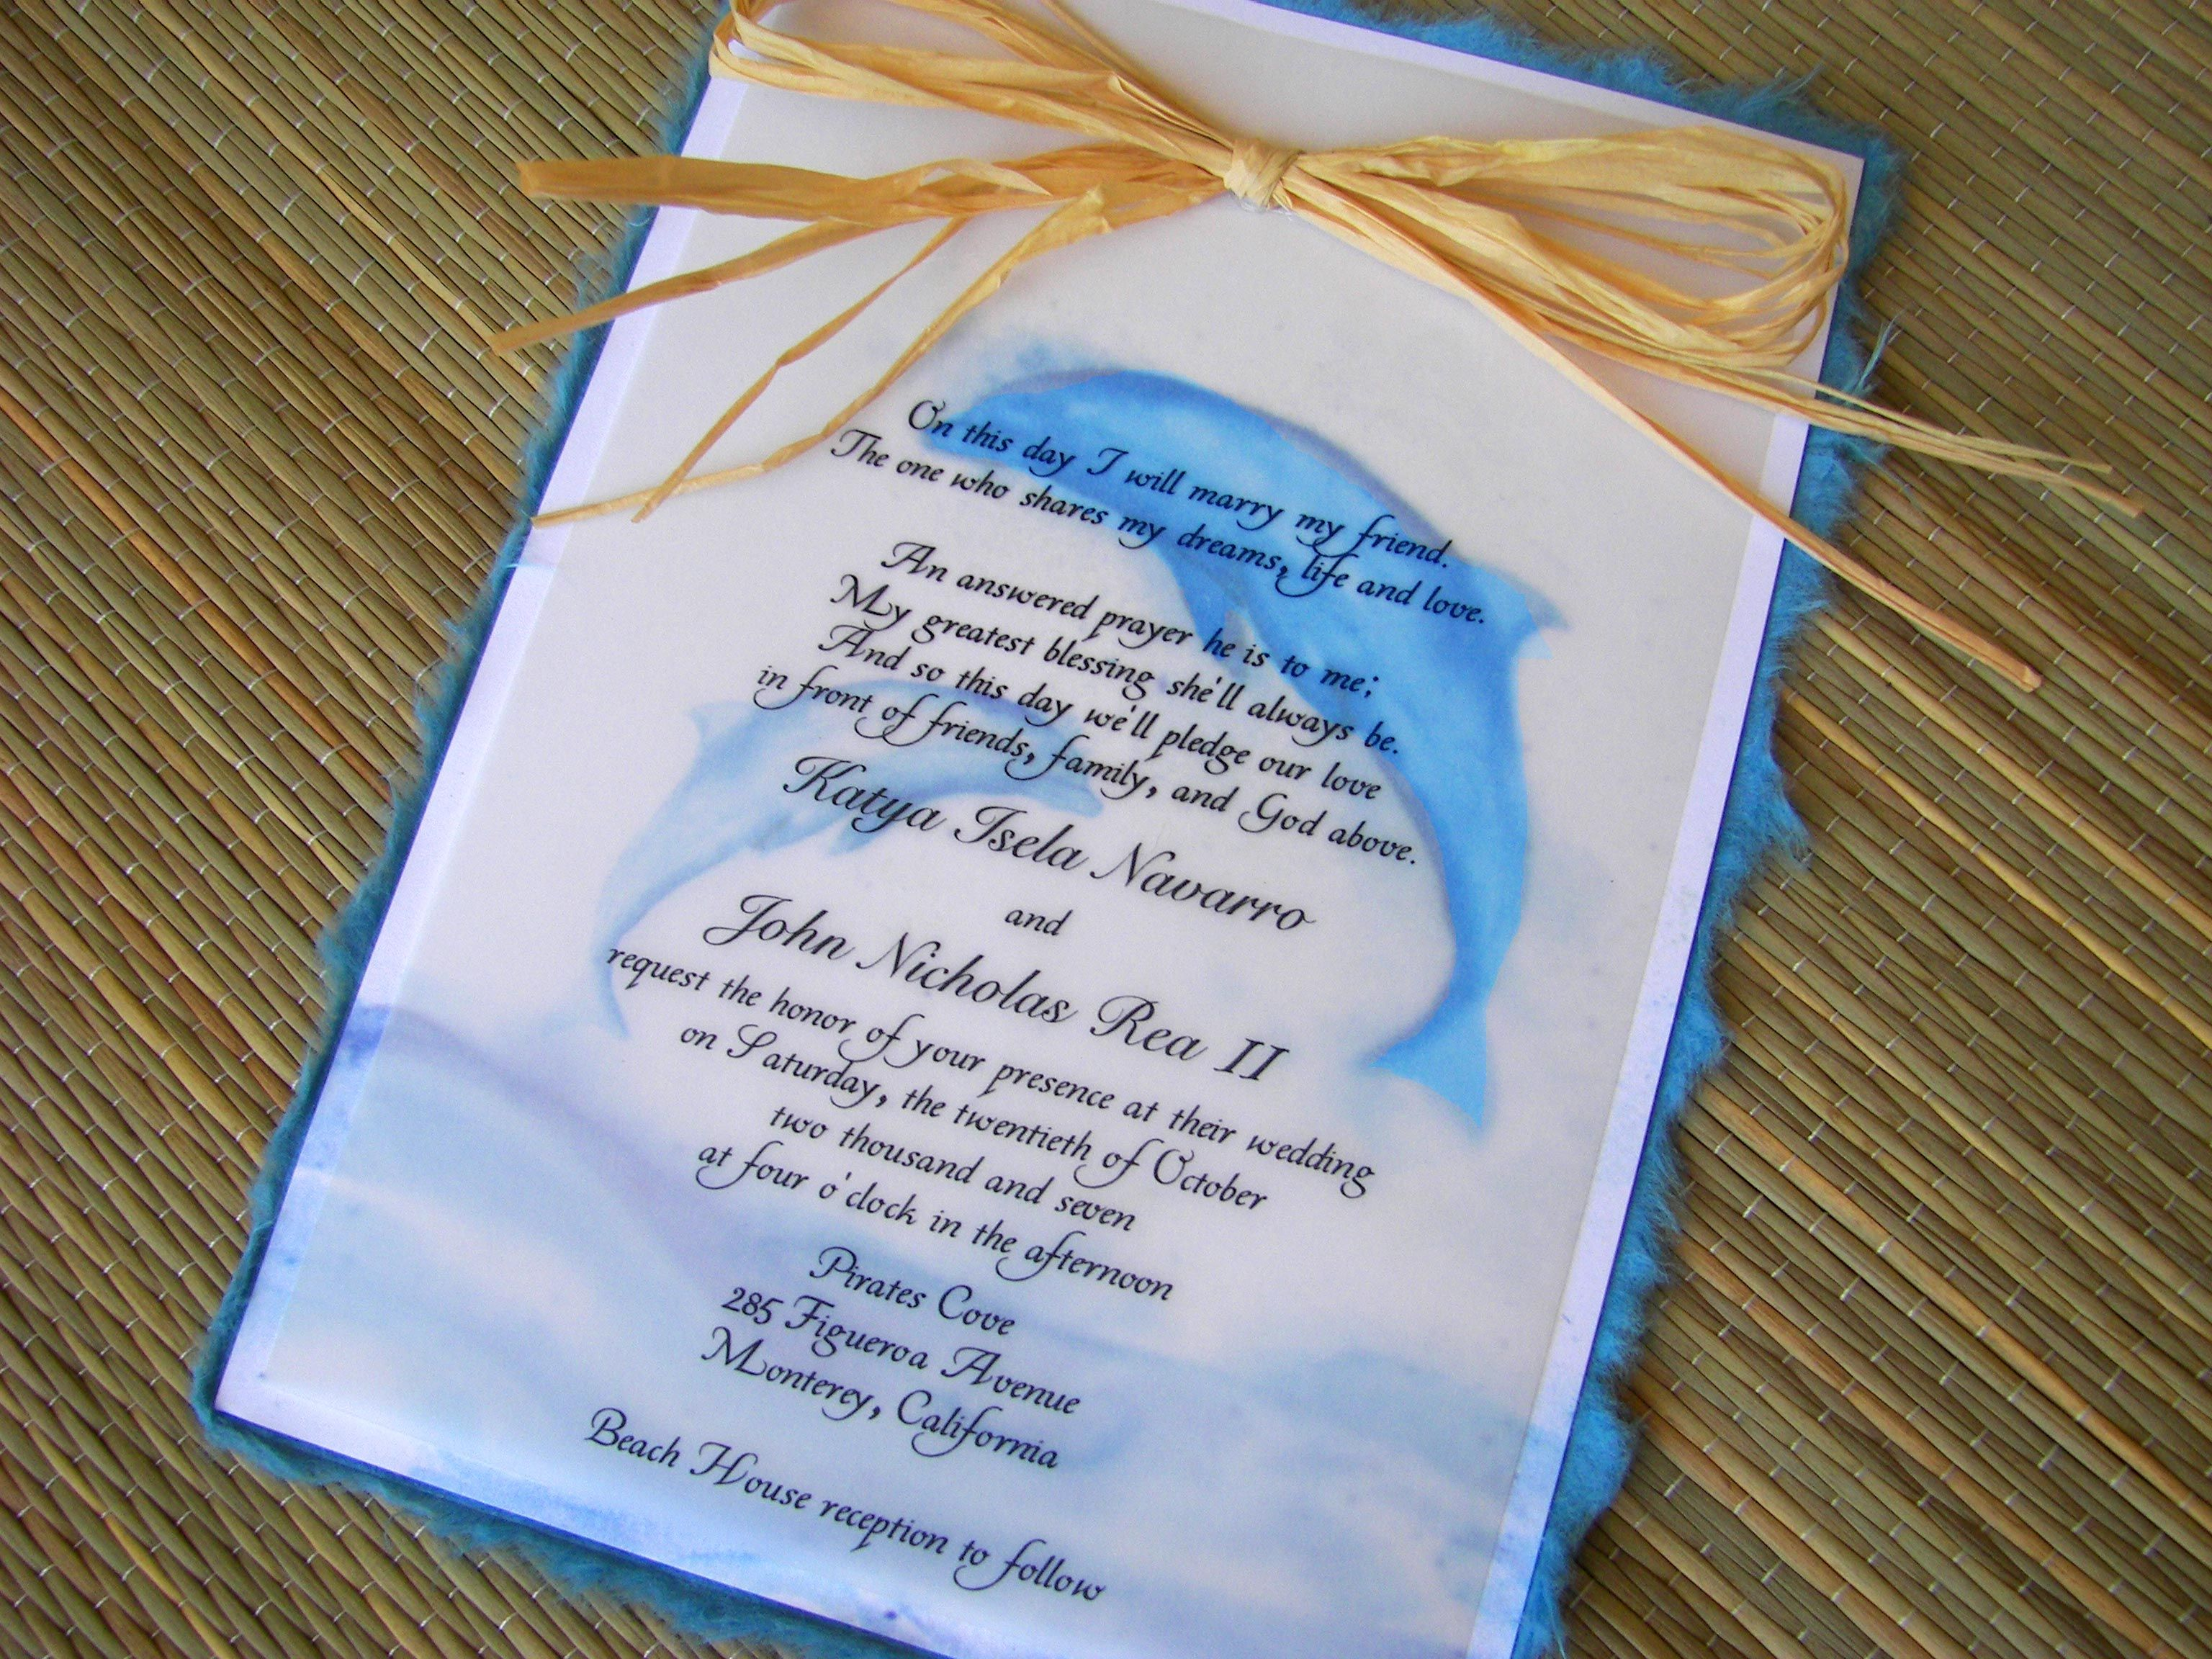 Dolphin themed wedding invitations Orginal artwork by Lenila L – Rsvp in Invitation Card Meaning